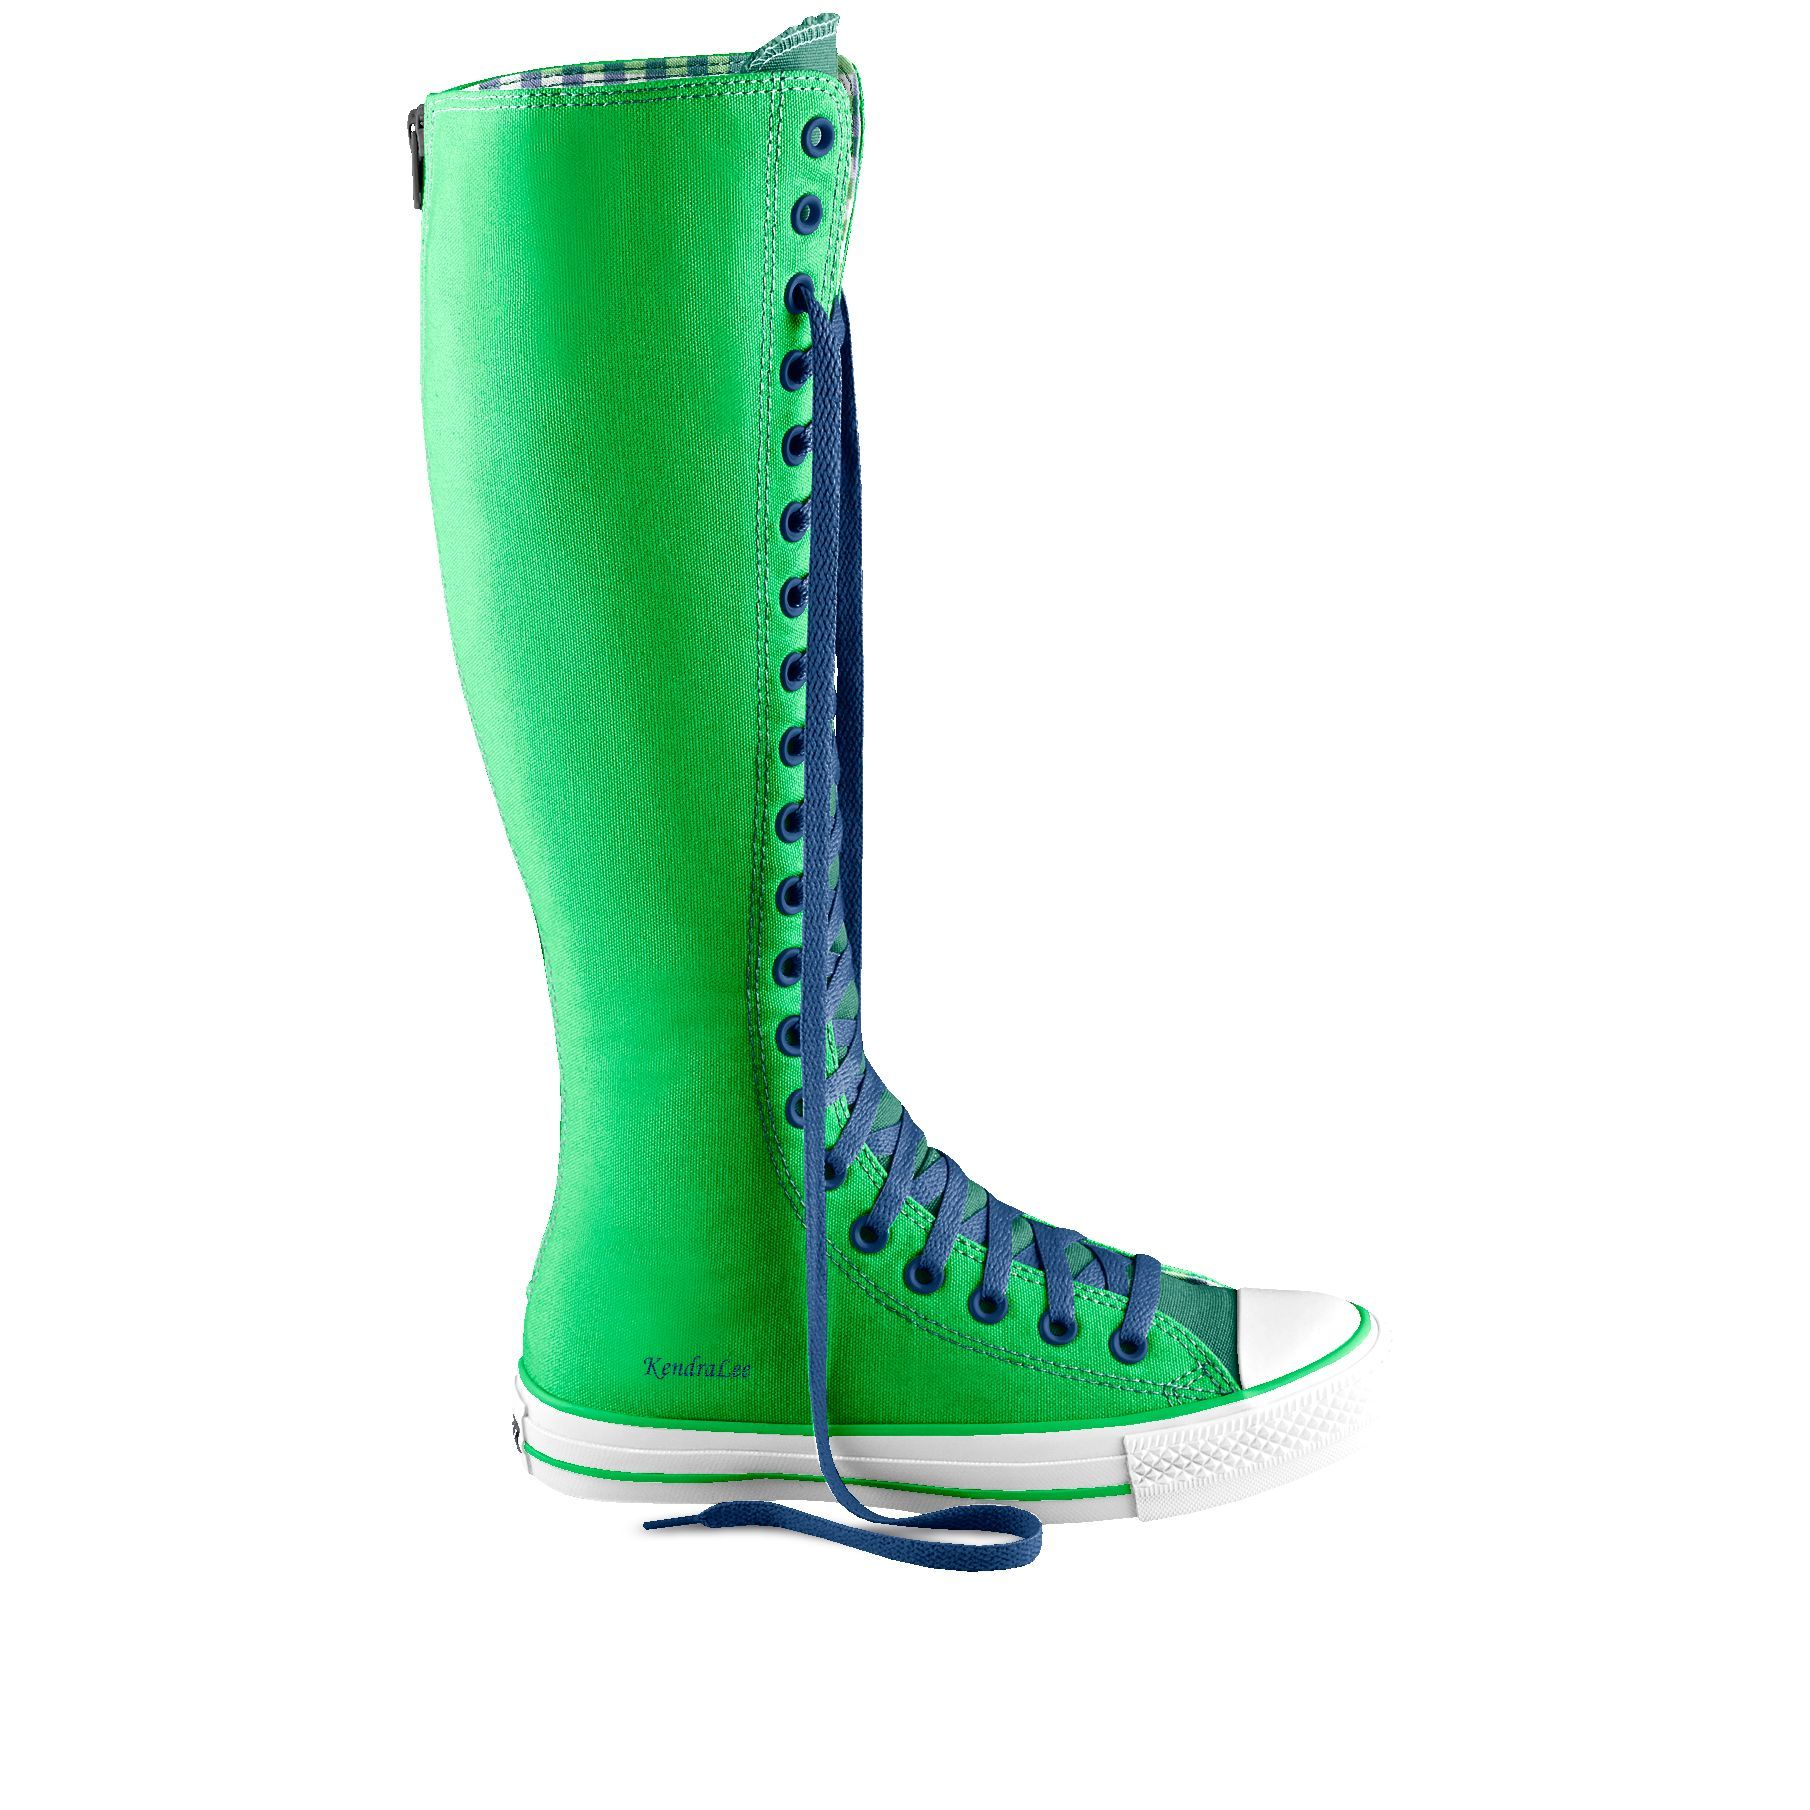 5ead30d2c752 Knee-hi green and blue Converse. I will own these. Knee High Converse